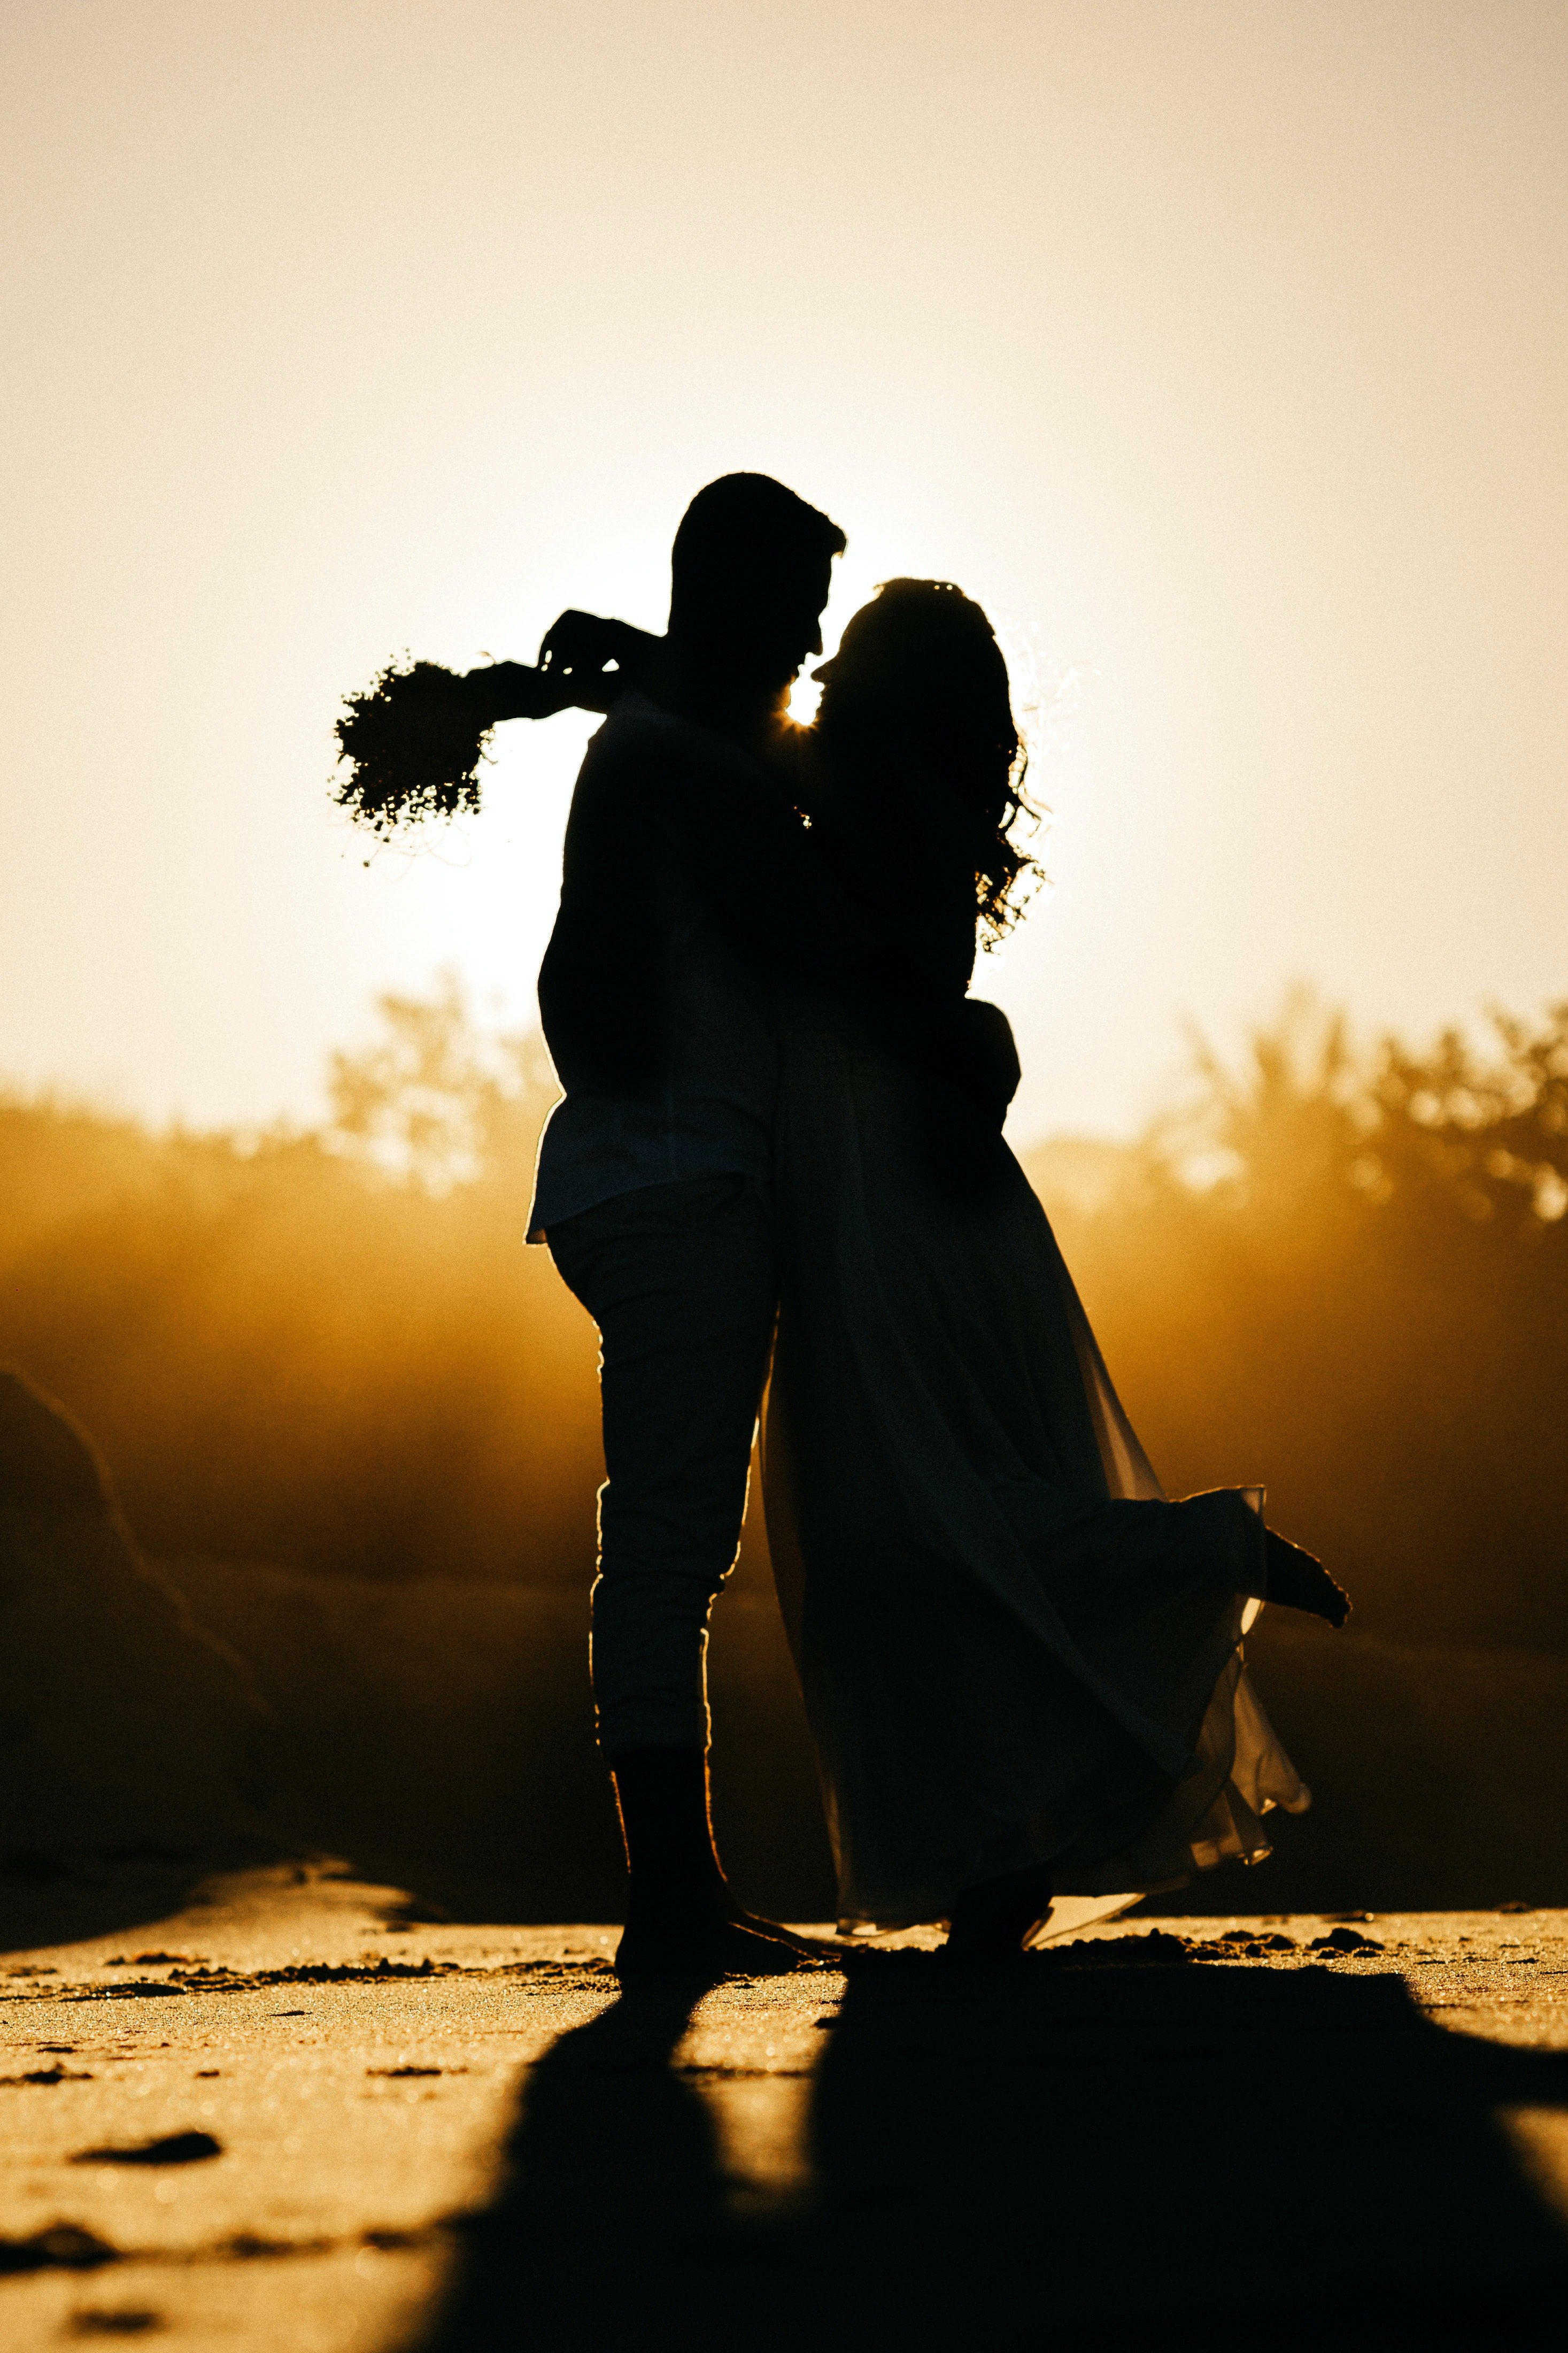 A couple sharing a romantic moment at sunset   Source: Pexels